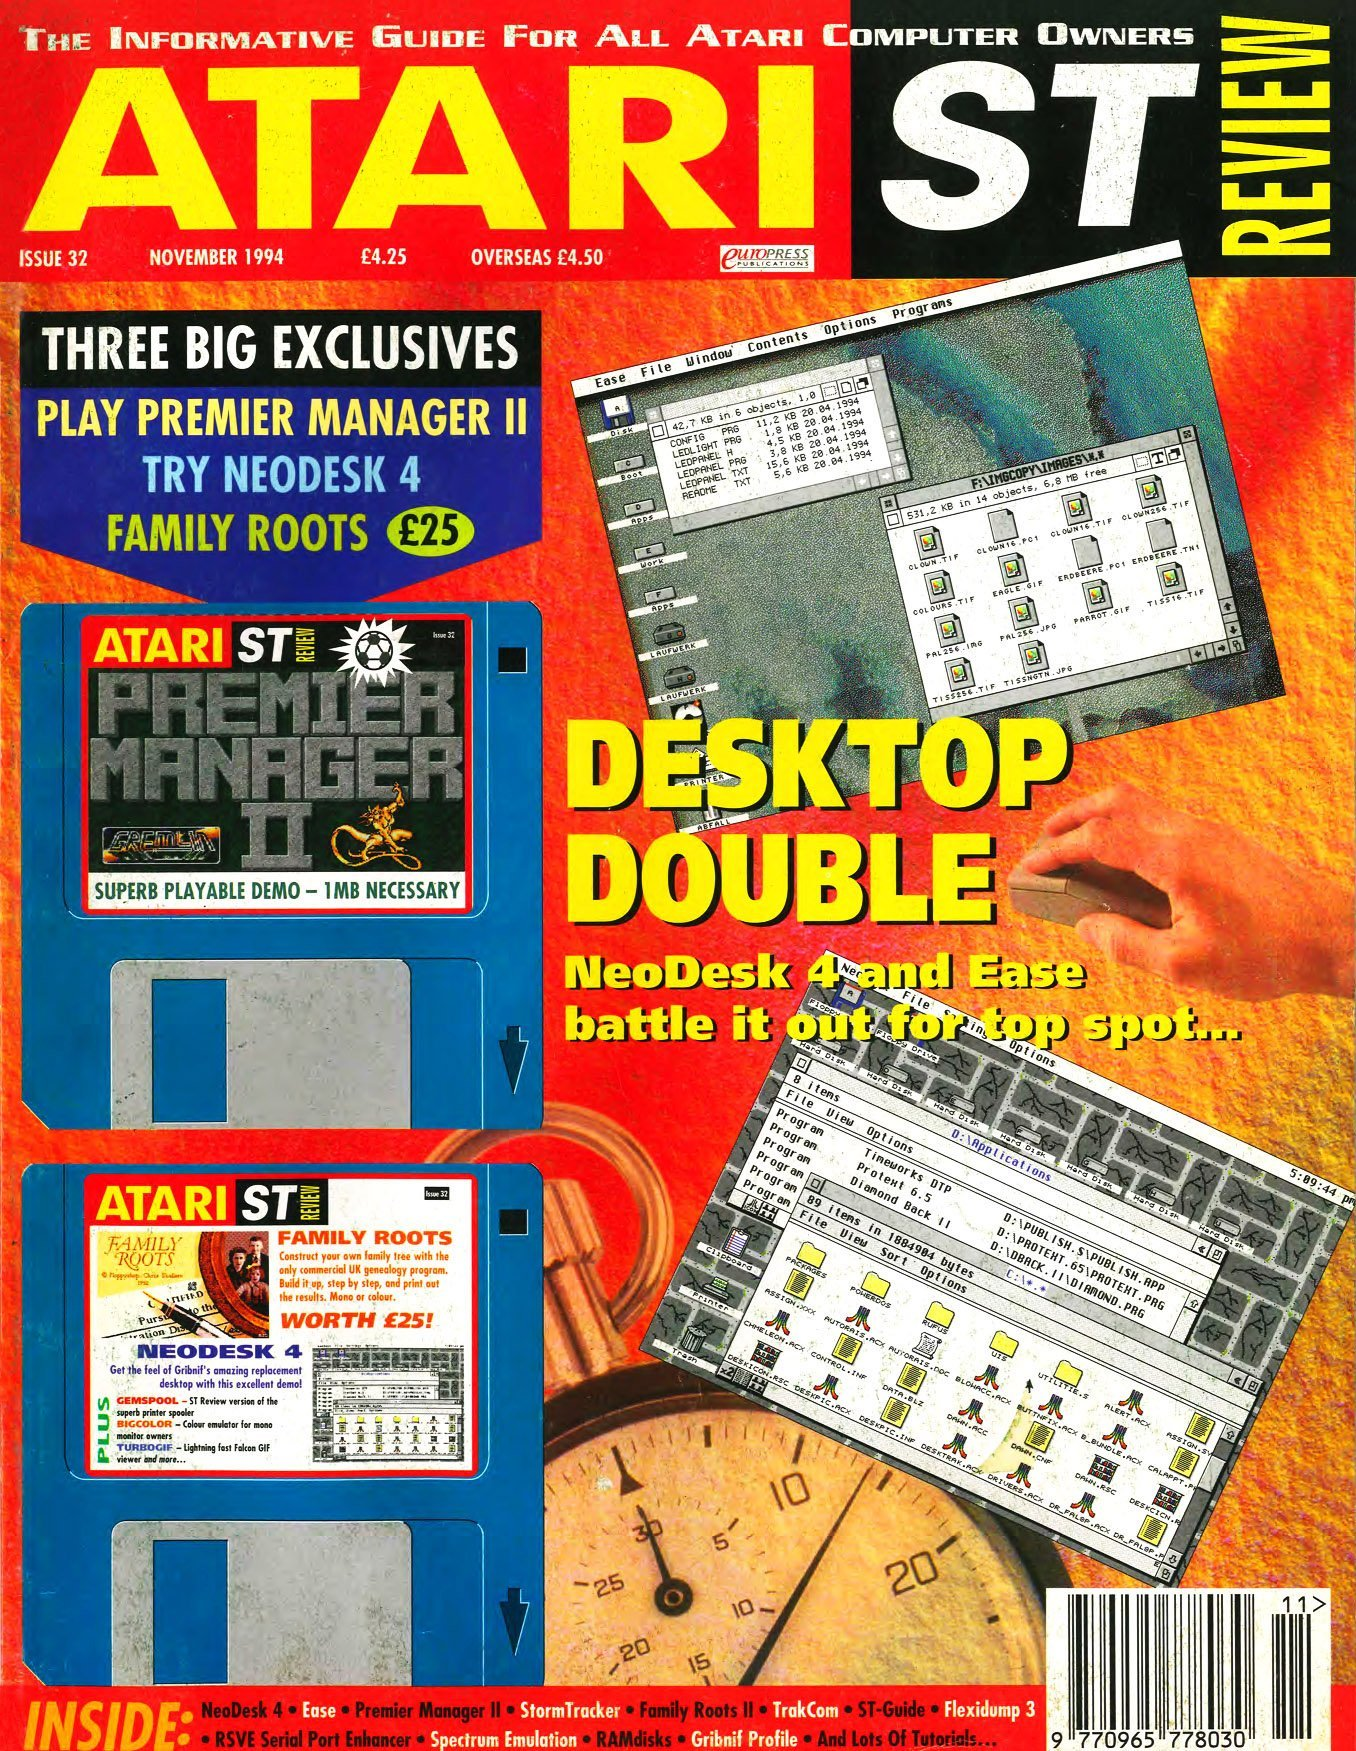 Atari ST Review Issue 32 (November 1994)